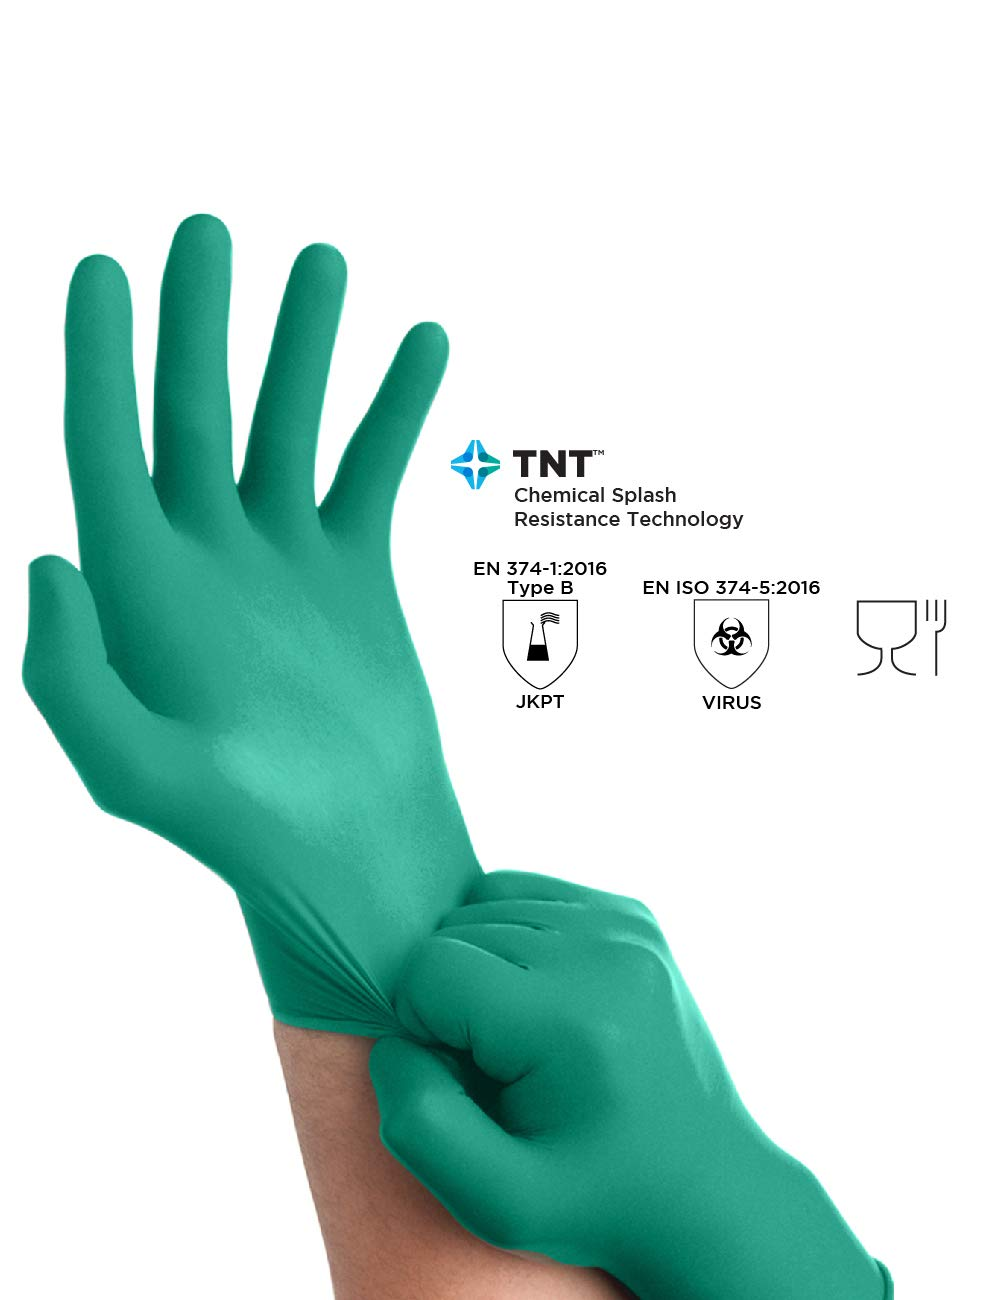 Ansell TouchNTuff 92-600 Nitrile Lightweight Glove with Beaded Cuff, Chemical/Splash Resistance, Powder Free, 4.7mil Thickness, 240mm Length, Size 8, Green (Box of 100) by Ansell (Image #4)